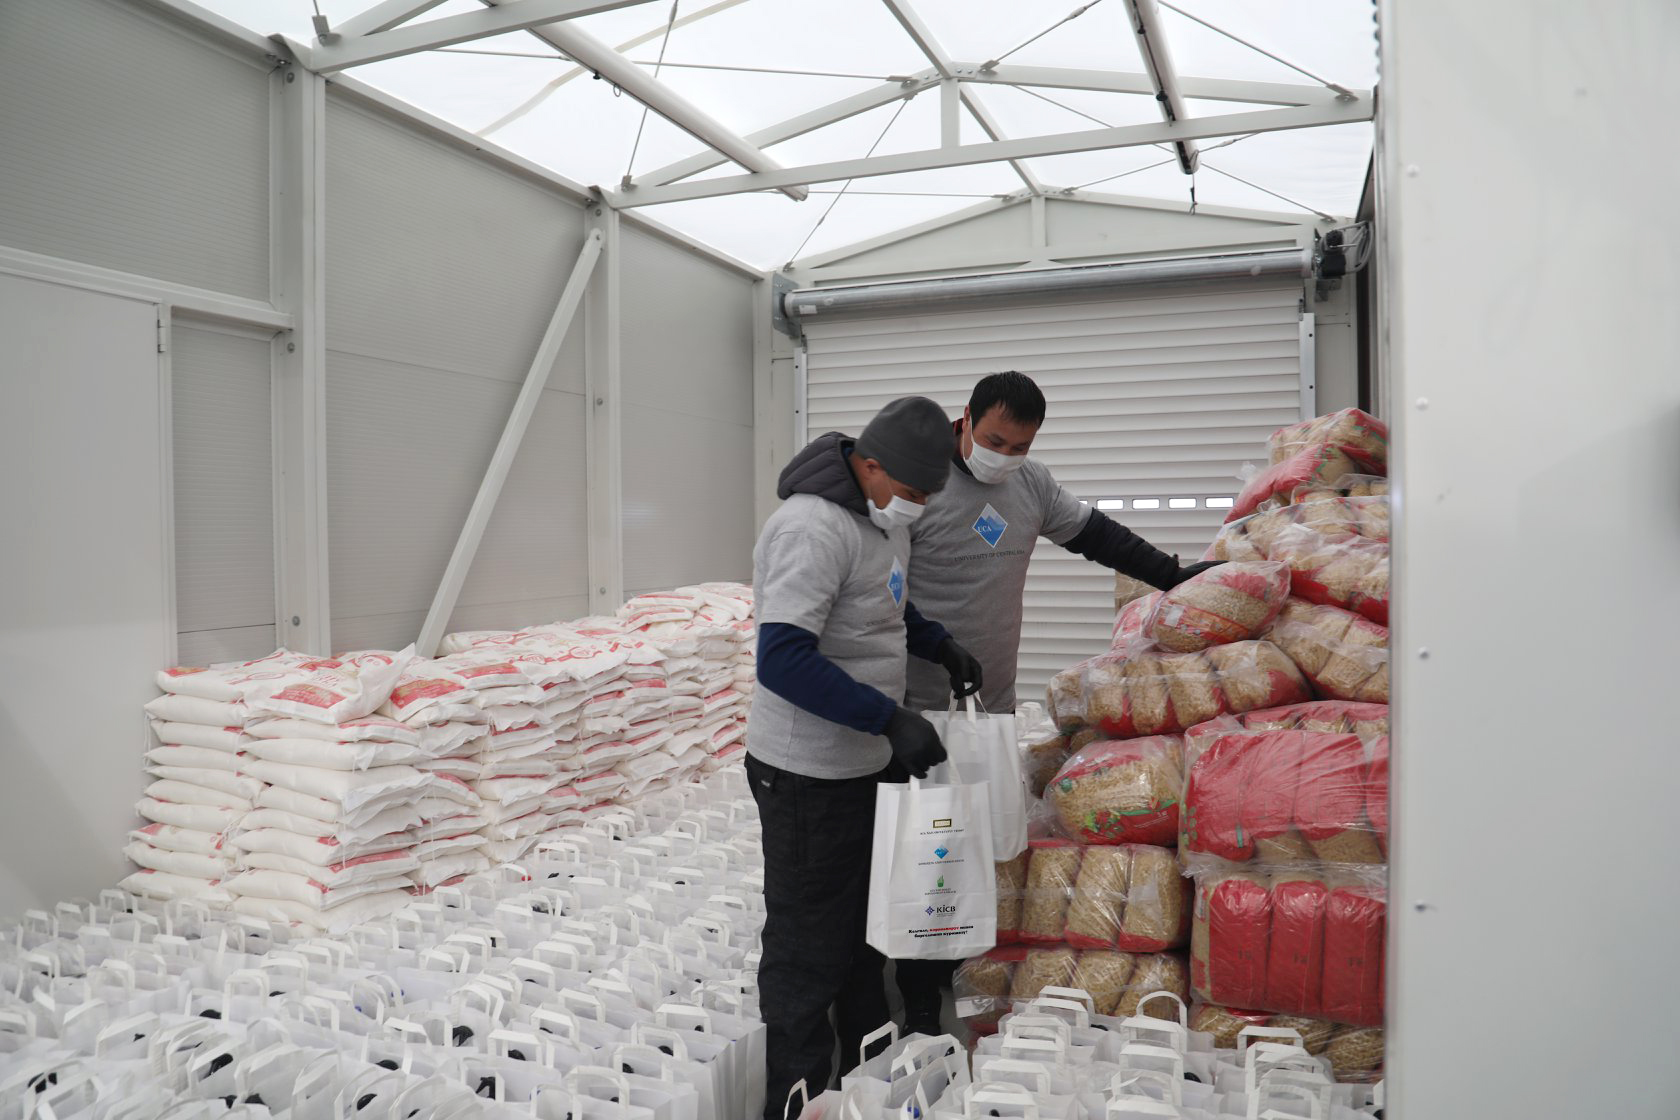 The University of Central Asia (UCA) has established a fund to provide assistance to families suffering as a result of the humanitarian and economic impact COVID-19. Staff at UCA are donating a day's salary to this fund on a voluntary basis, which will be distributed to families in need. UCA